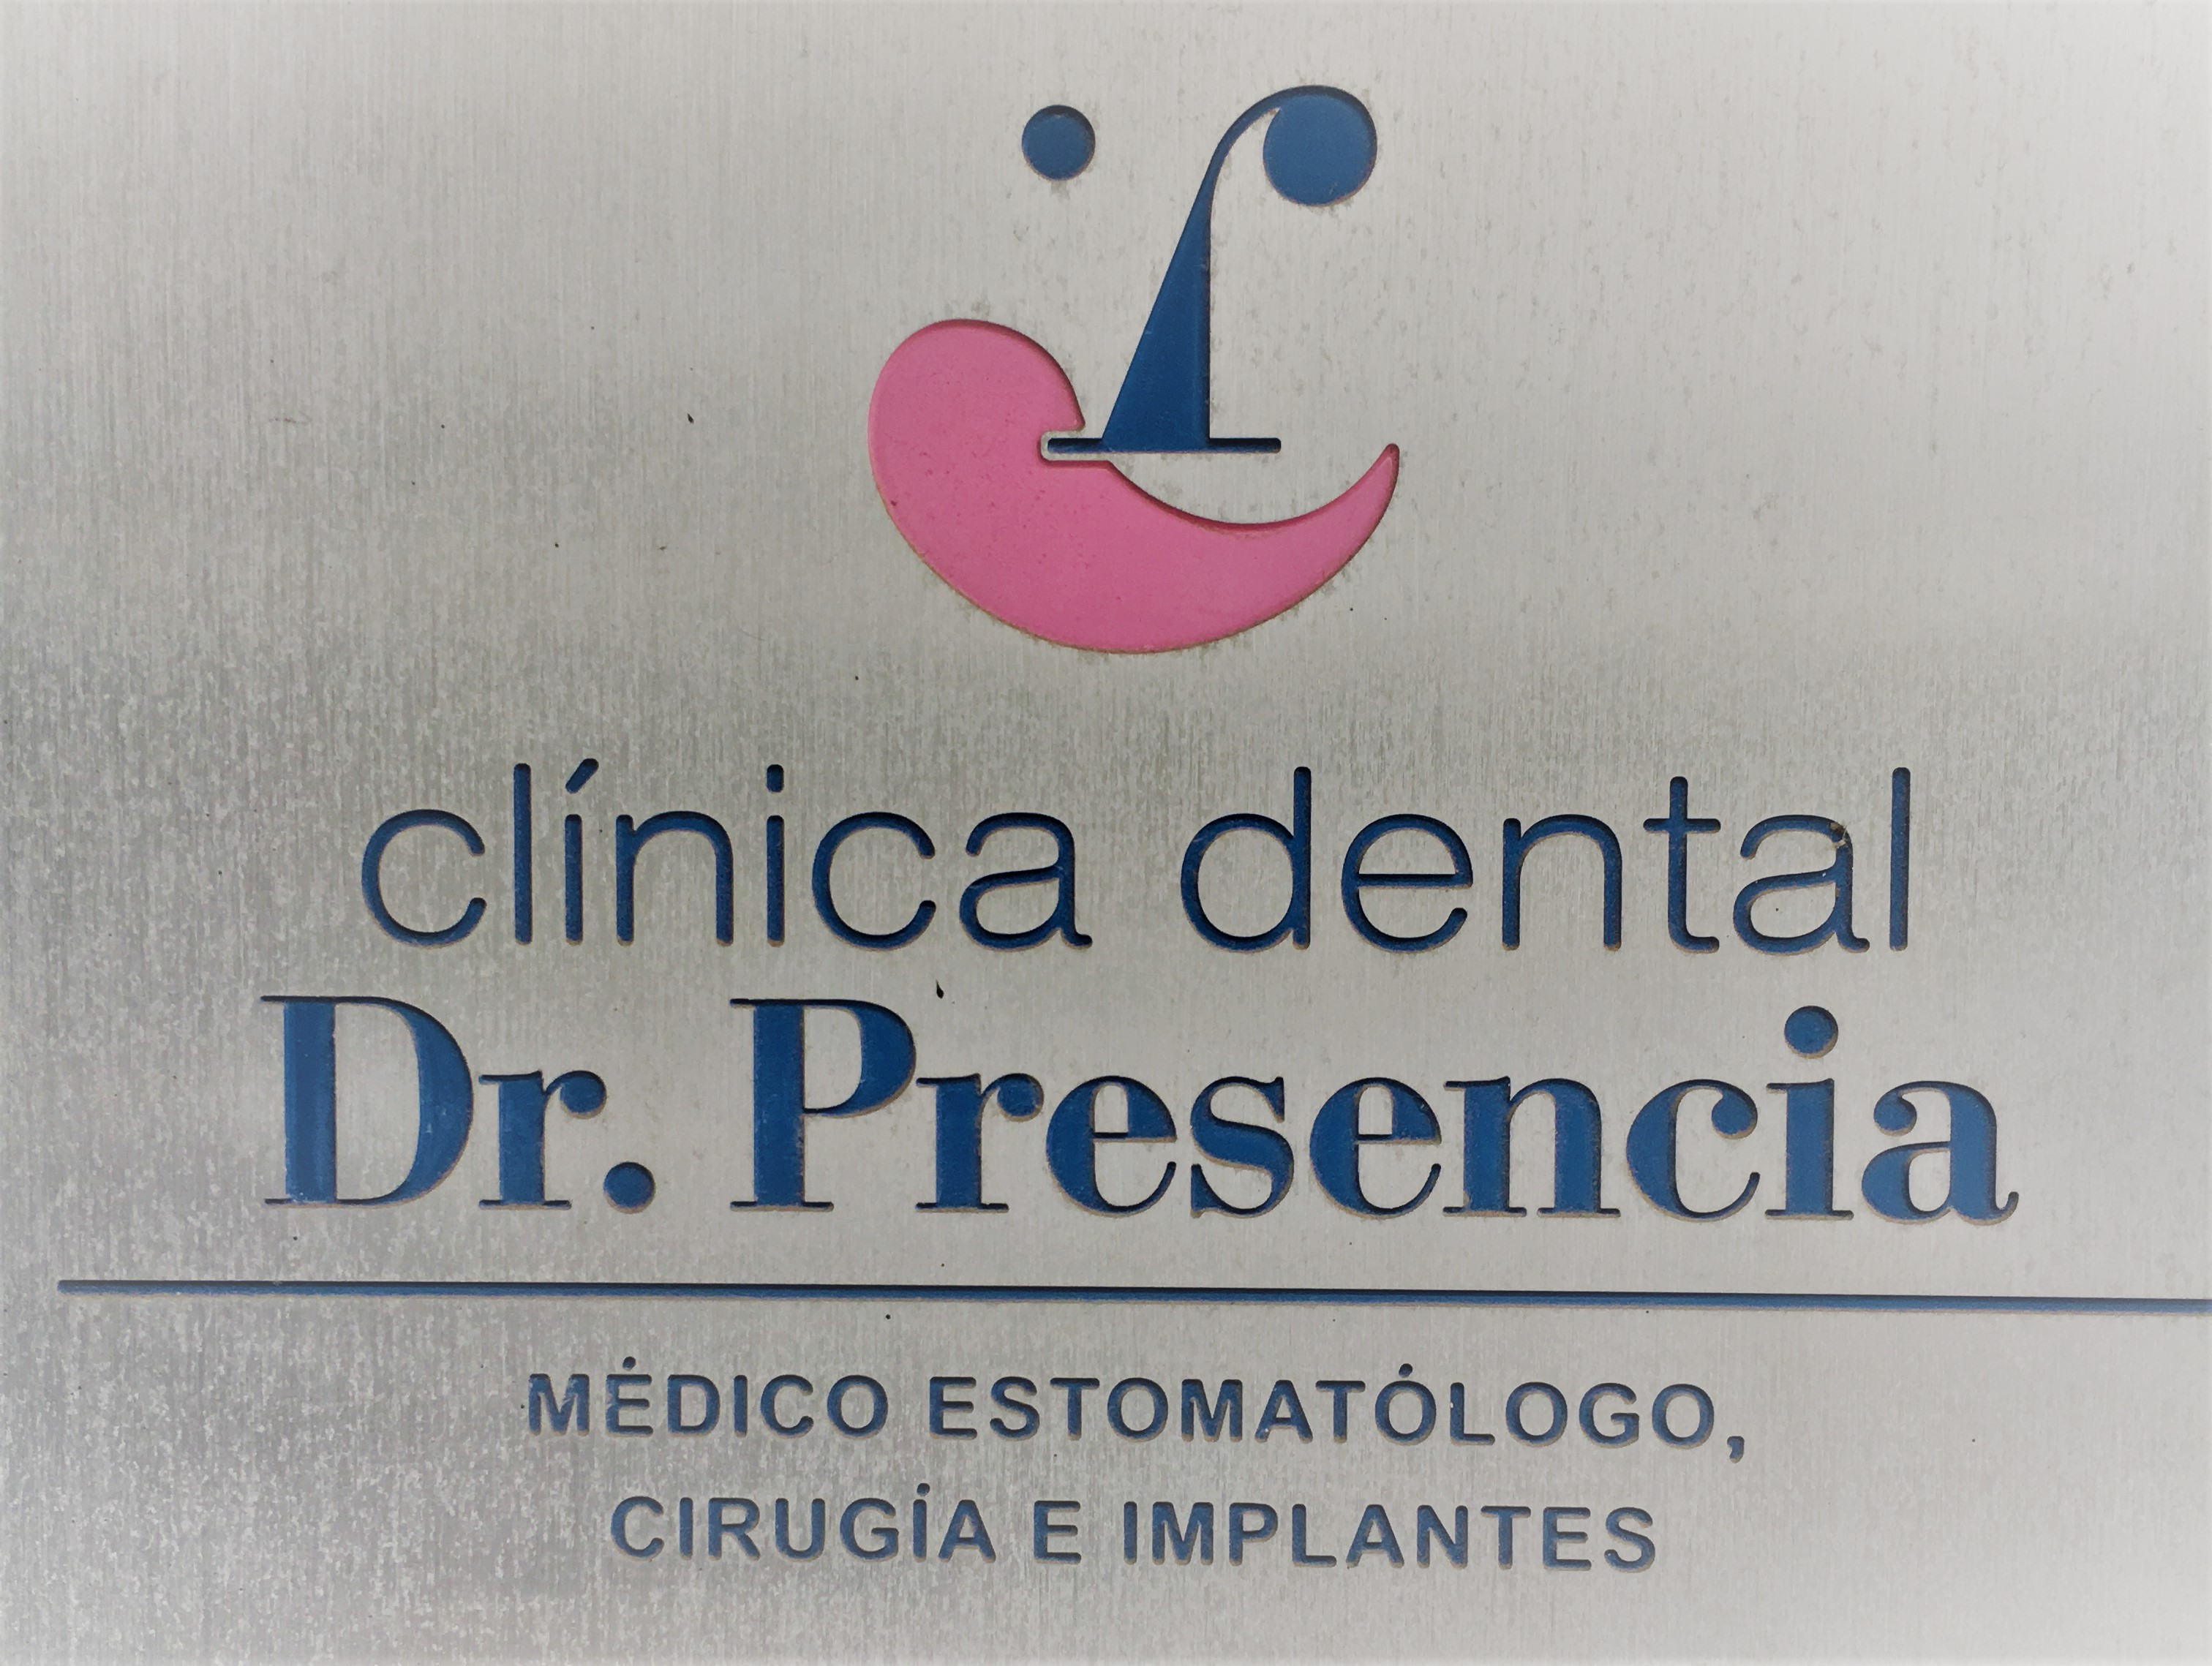 Clínica Dental Doctor Miguel Angel Presencia Martí